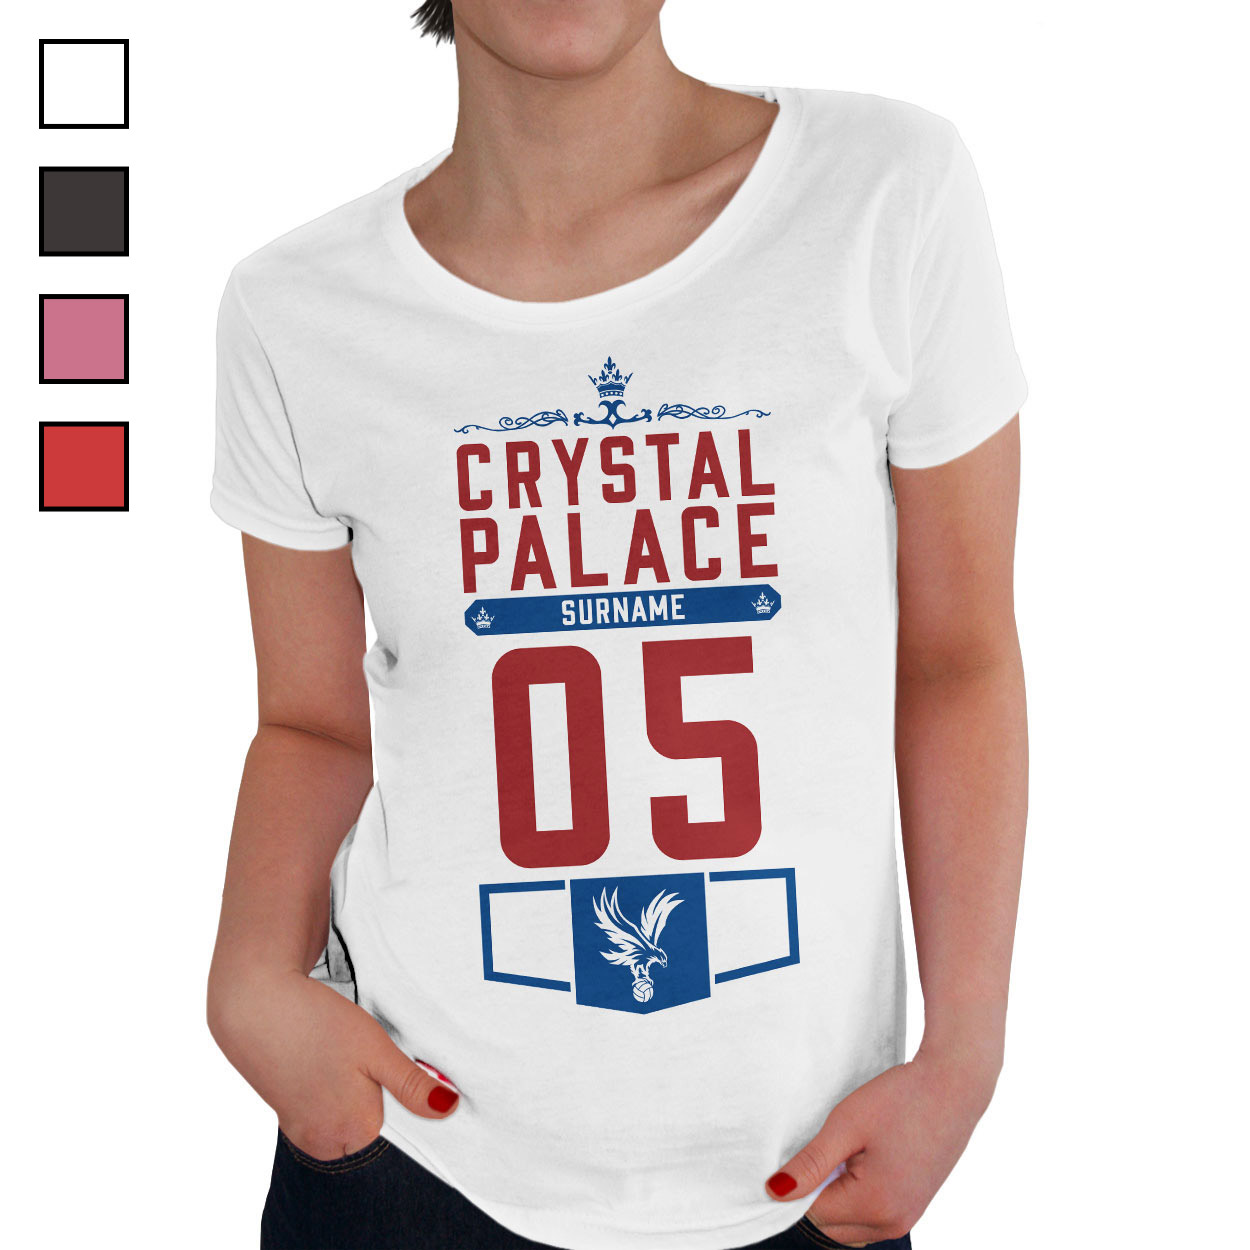 Crystal Palace FC Ladies Club T-Shirt